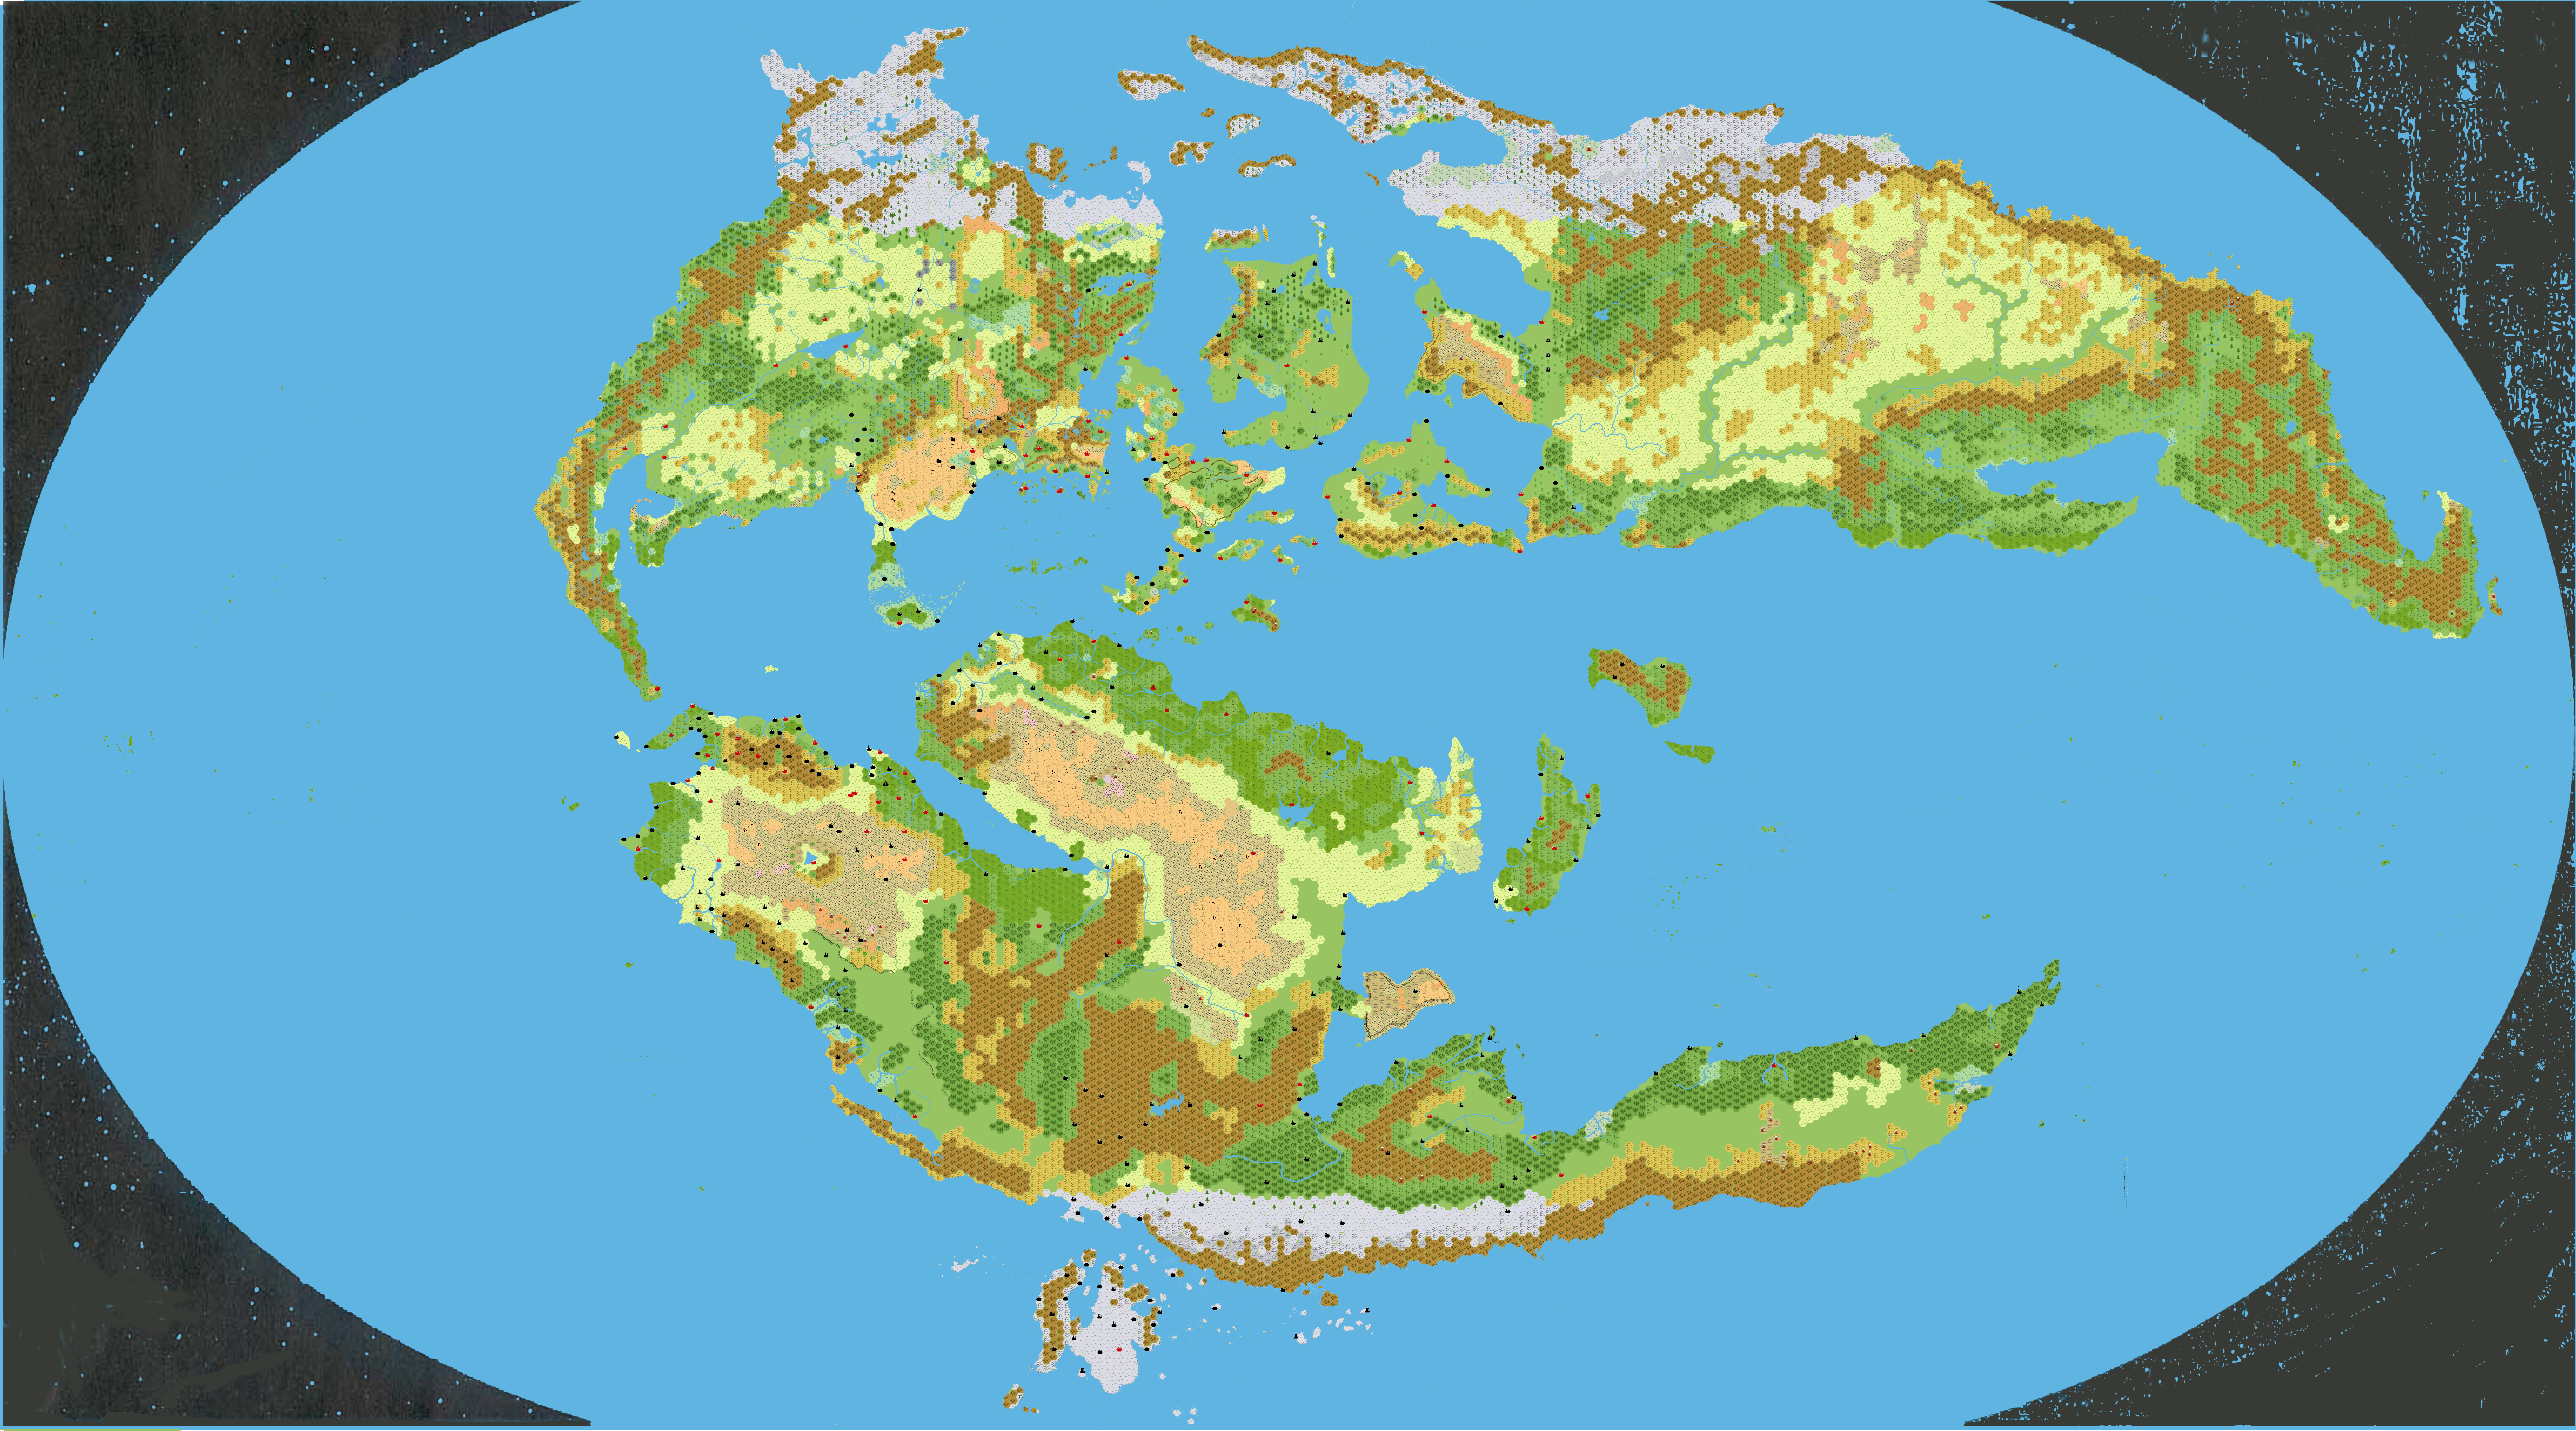 Mystara outer world 1000 ac 72 miles per hex this is a map of mystara in 72 miles per hex the existing canon maps at this scale were the primary source and the map was modeled mainly on them gumiabroncs Images